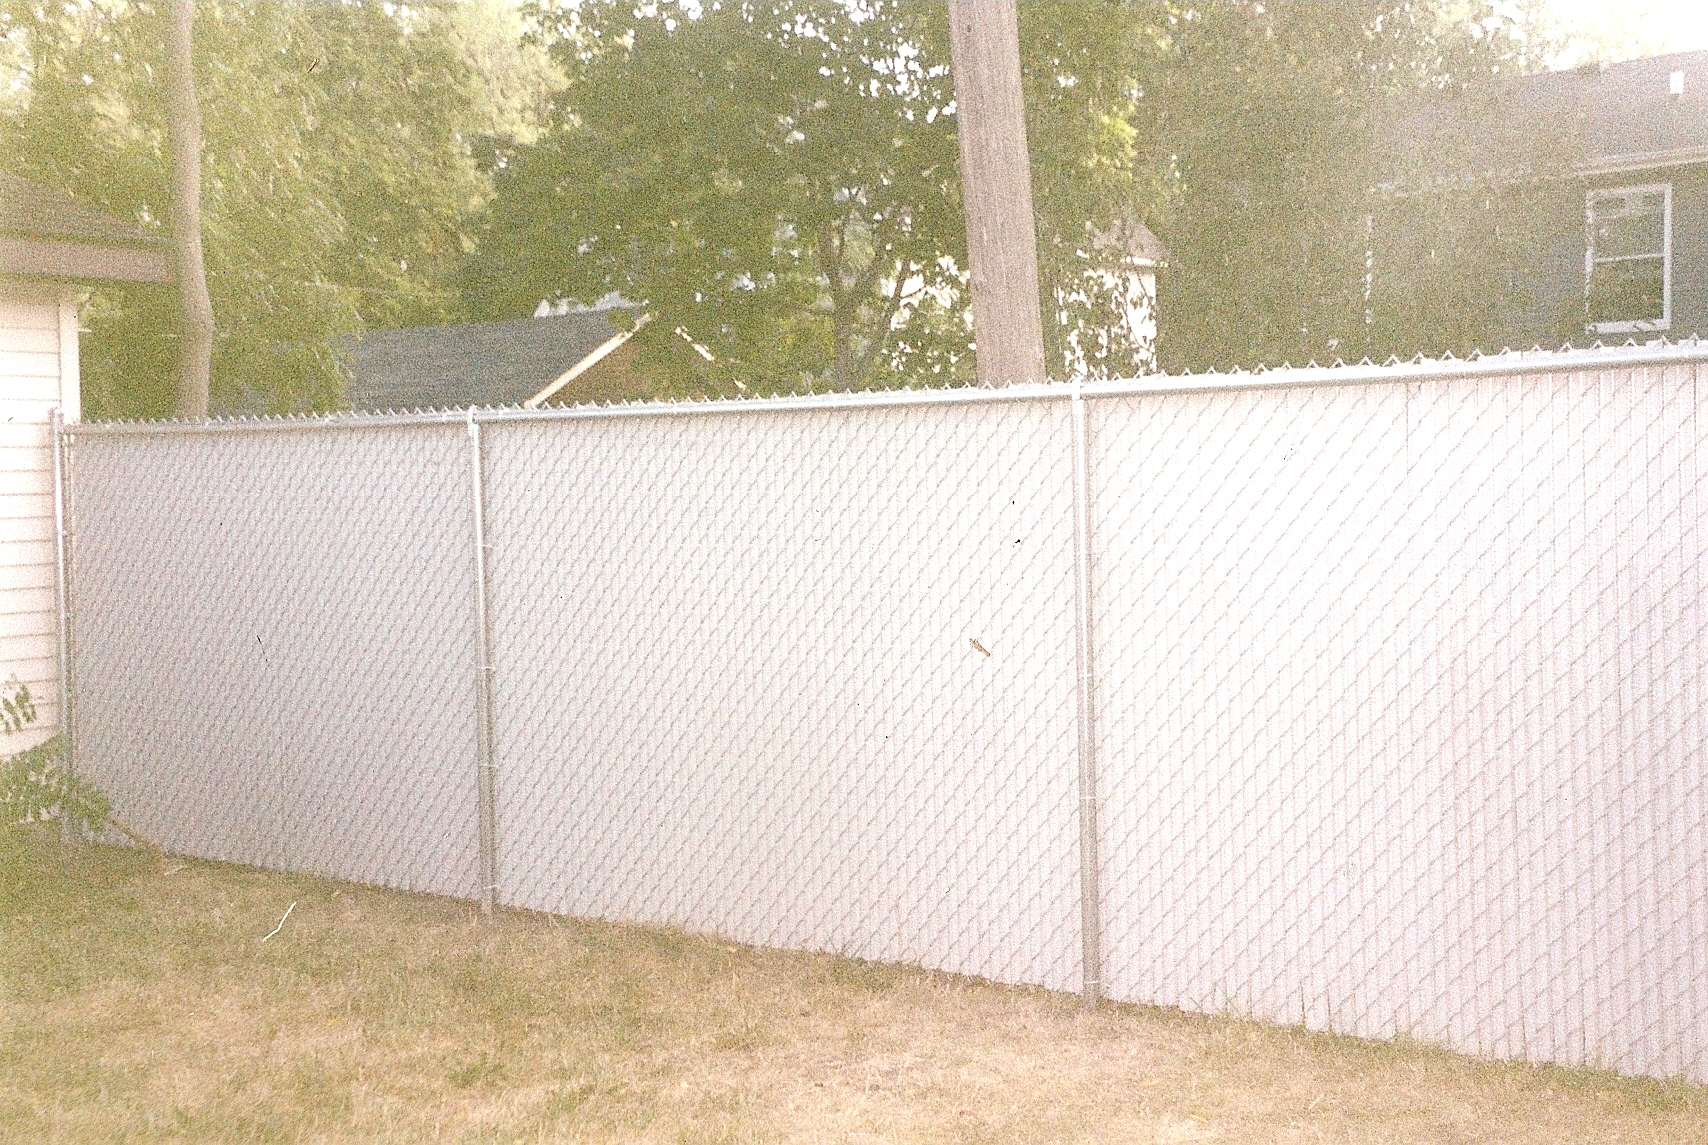 Chain Link Fence Privacy Ideas plain chain link fence privacy slats slat top view inside design ideas